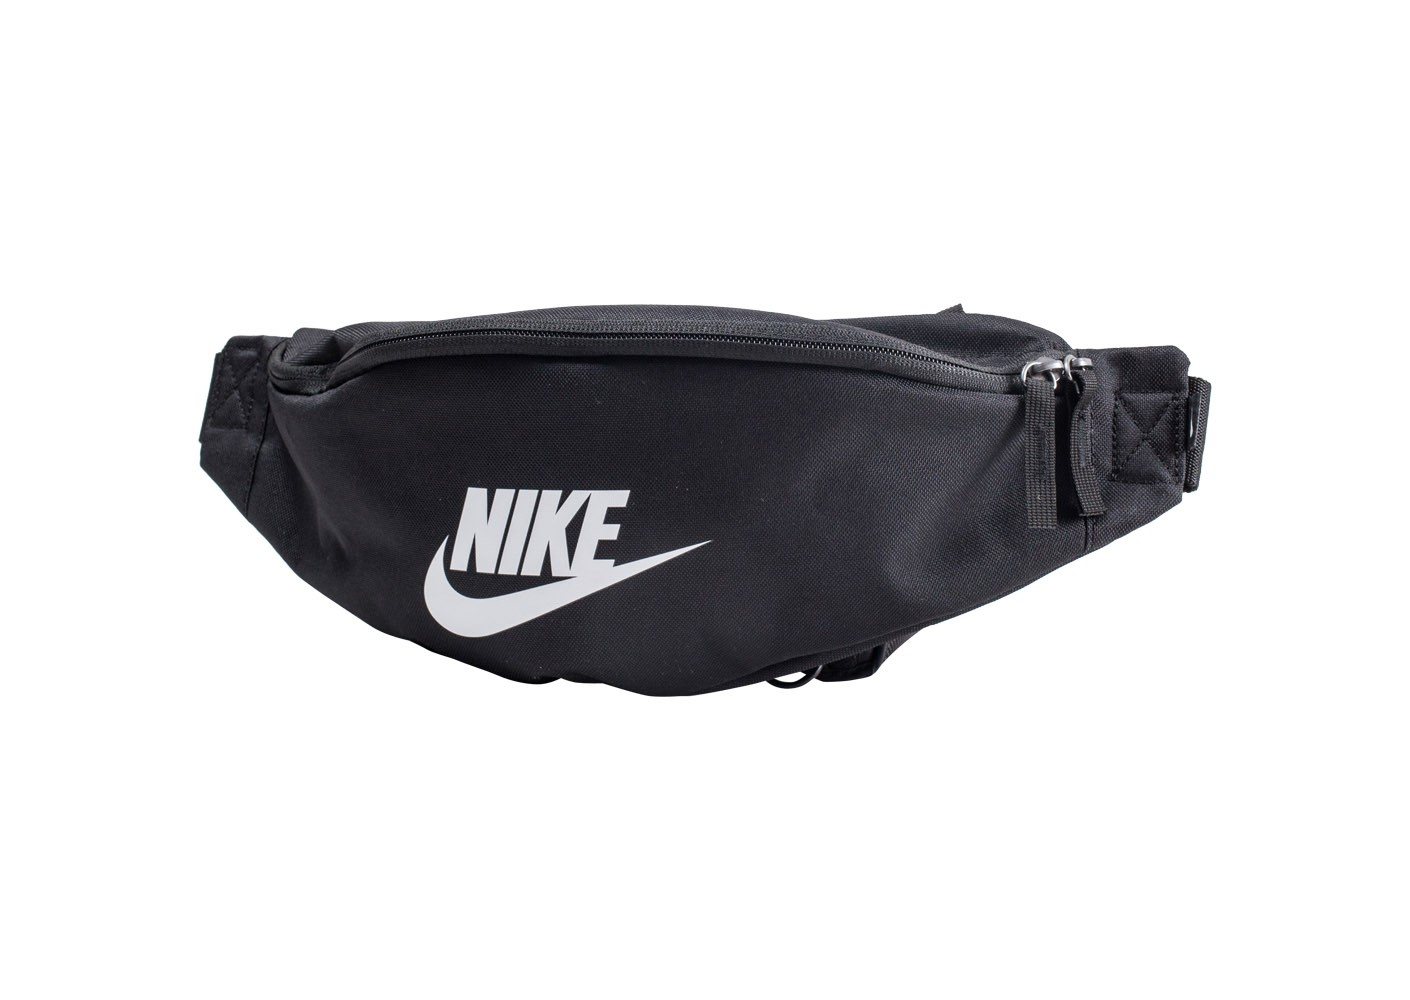 nike sac banane heritage hip pack noire sacs sacoches chausport. Black Bedroom Furniture Sets. Home Design Ideas